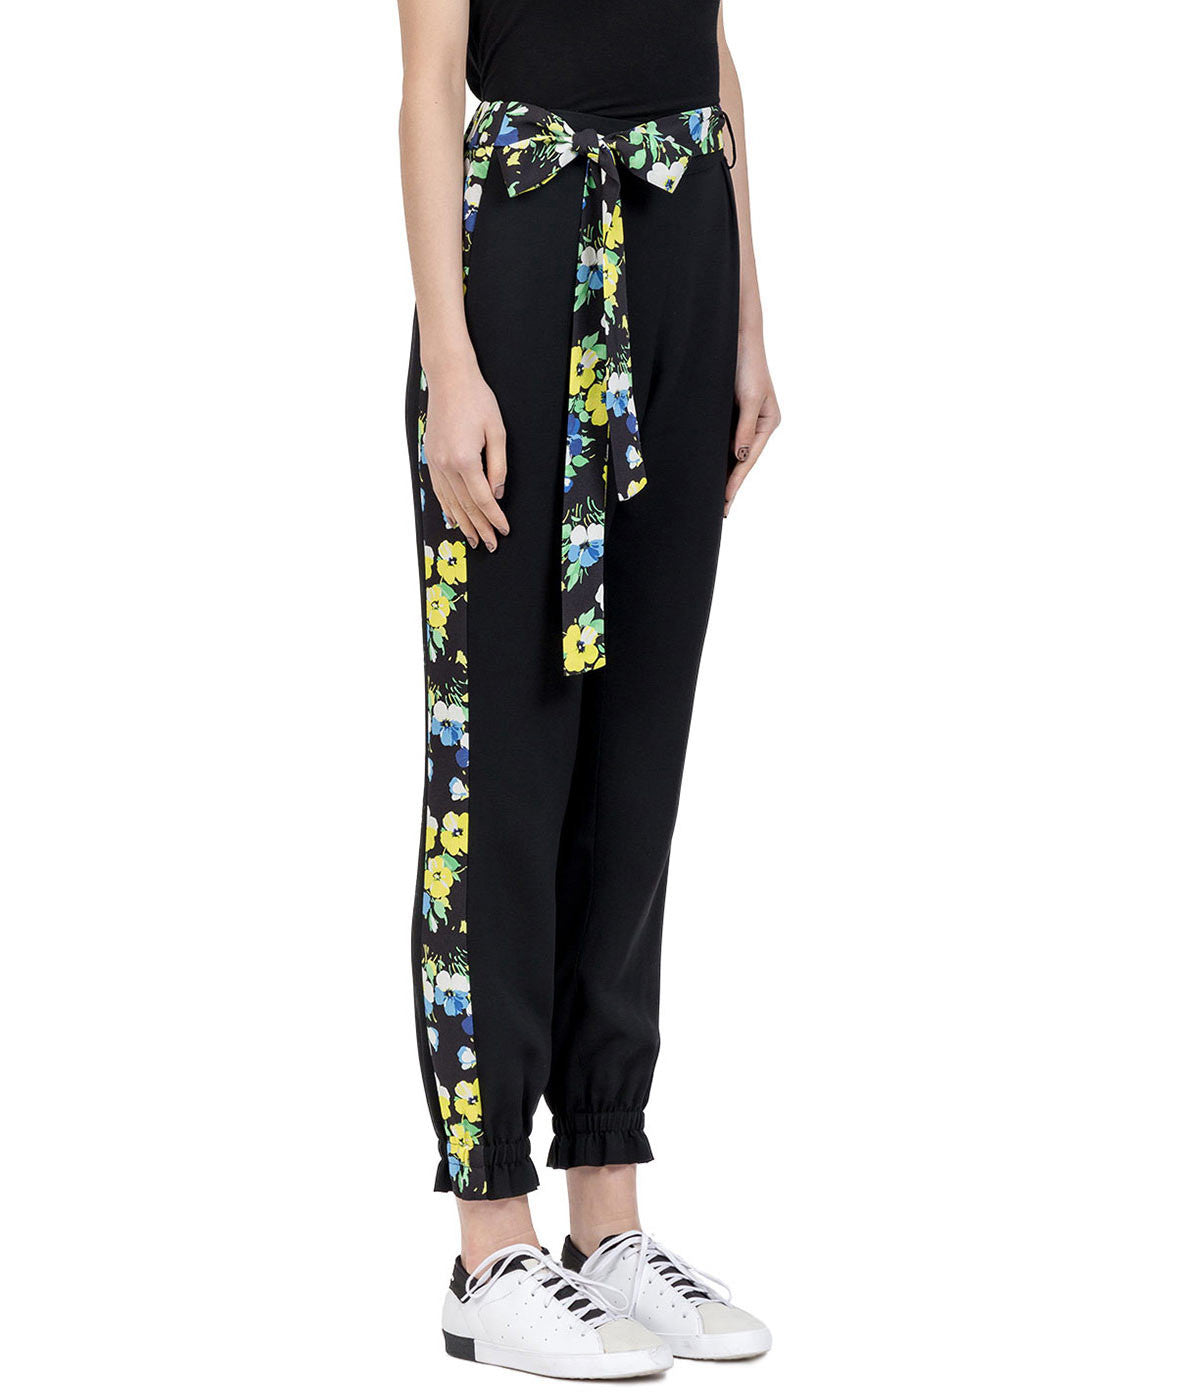 Black Floral Crepe Pants